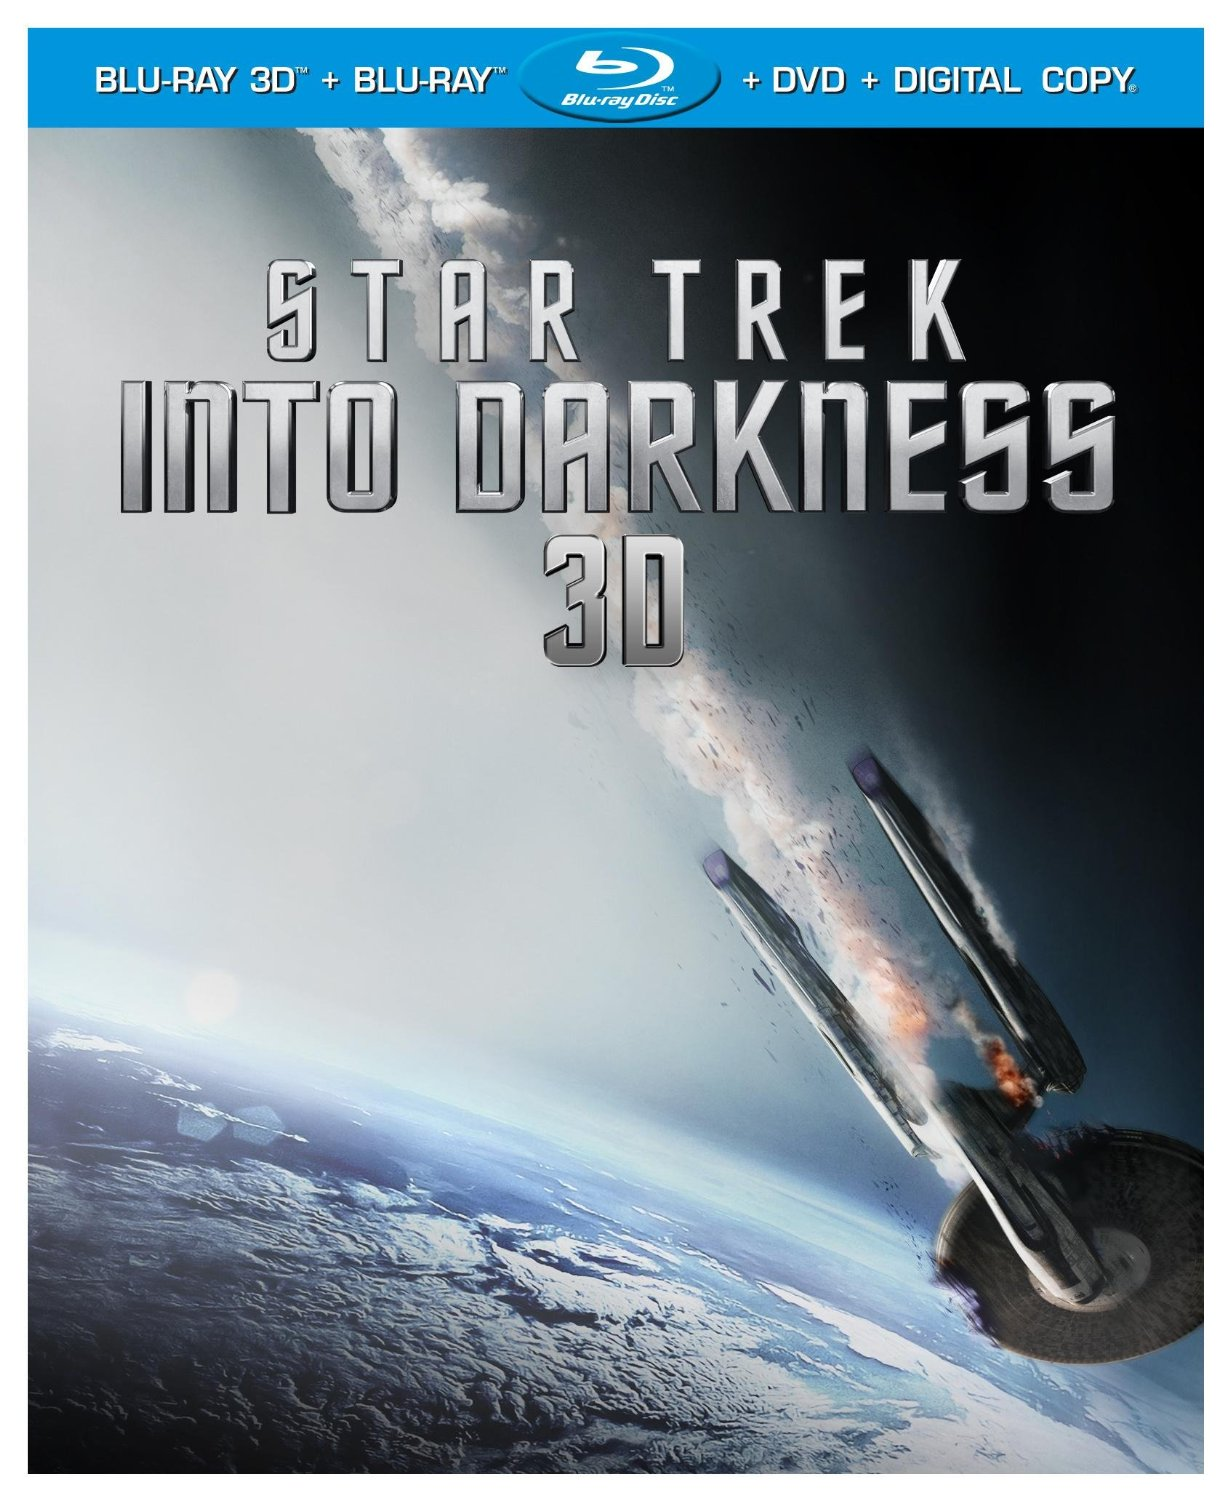 Star Trek Into Darkness (Blu-ray 3D + Blu-ray + DVD + Digital Copy) Star Trek Into Darkness Blu-ray out September 10th